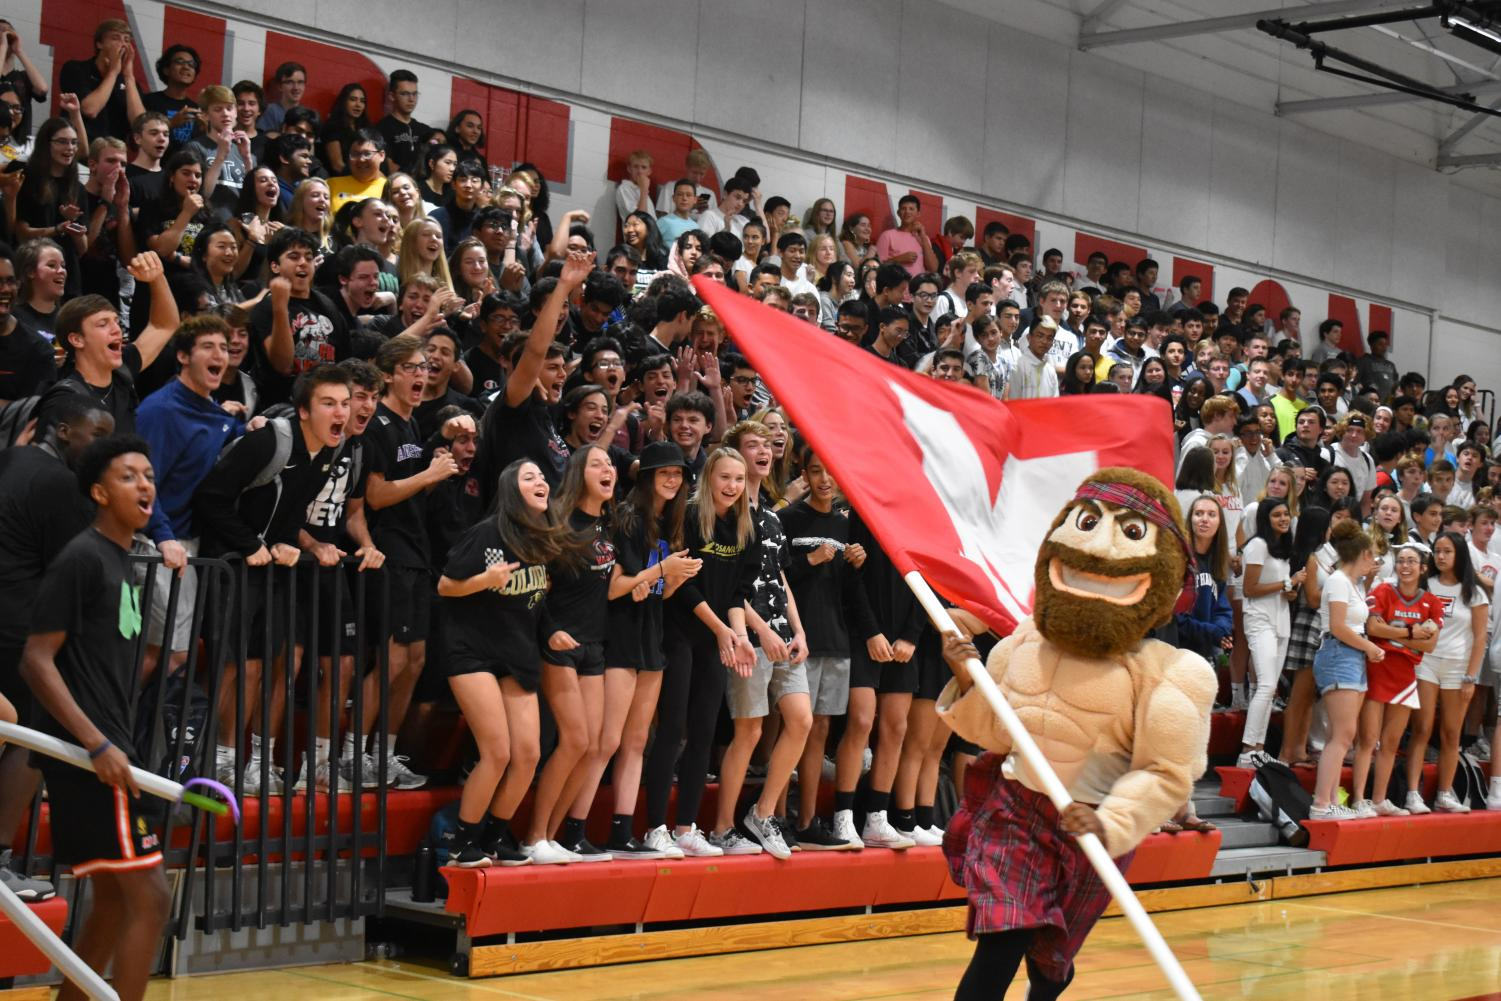 SECTION SCREAMS- Angus runs around the gym with our flag as the grades compete to be the loudest